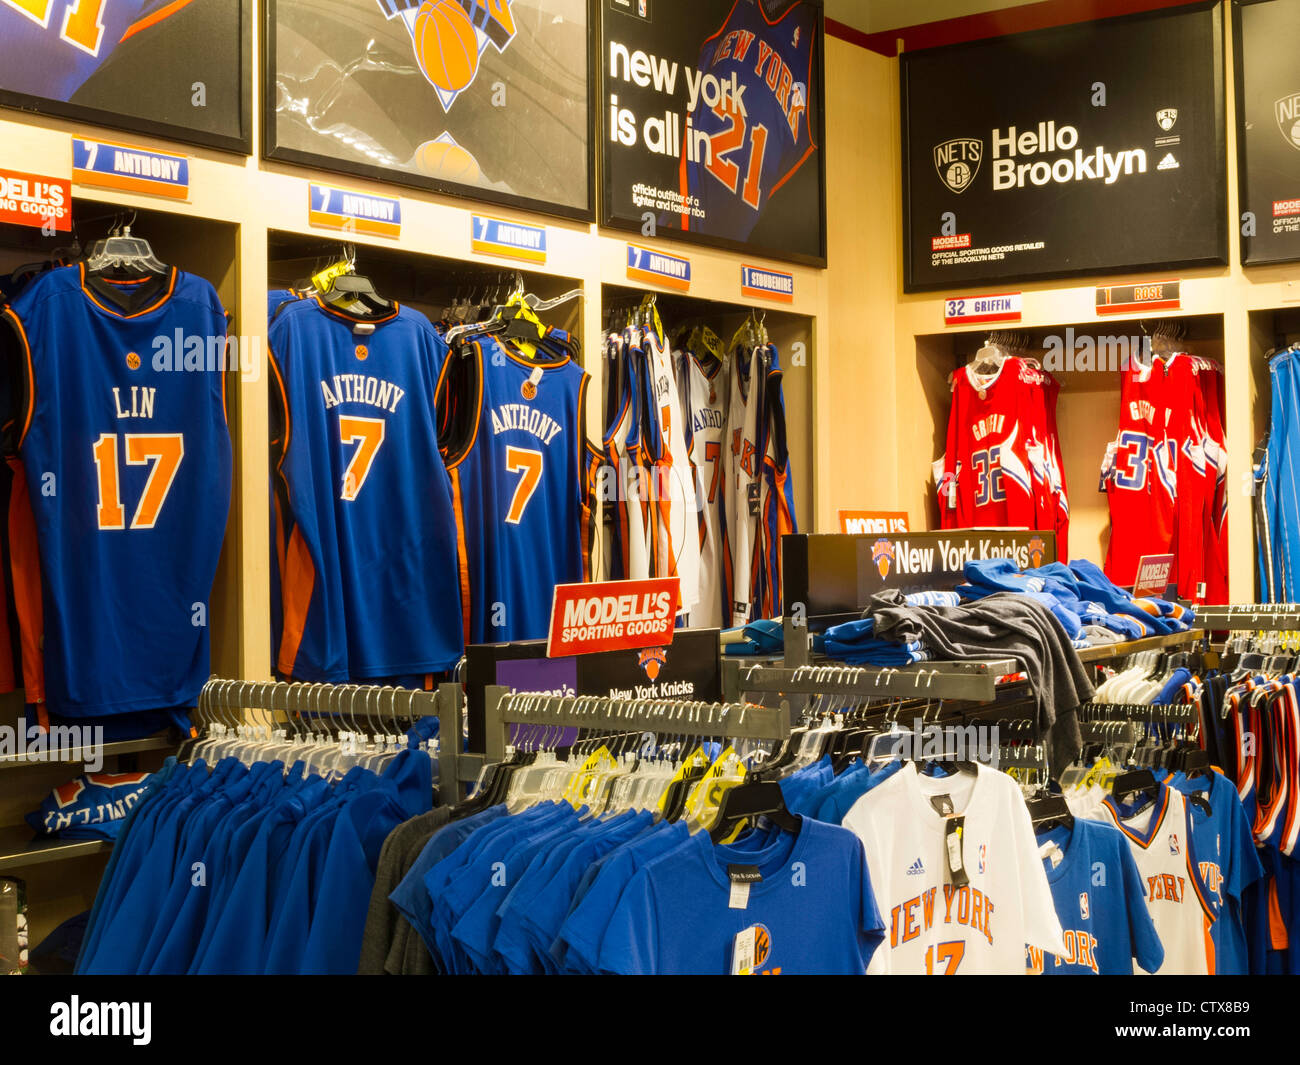 buy online 01786 1d240 NBA Jerseys, Modell's Sporting Goods Store Interior, NYC ...